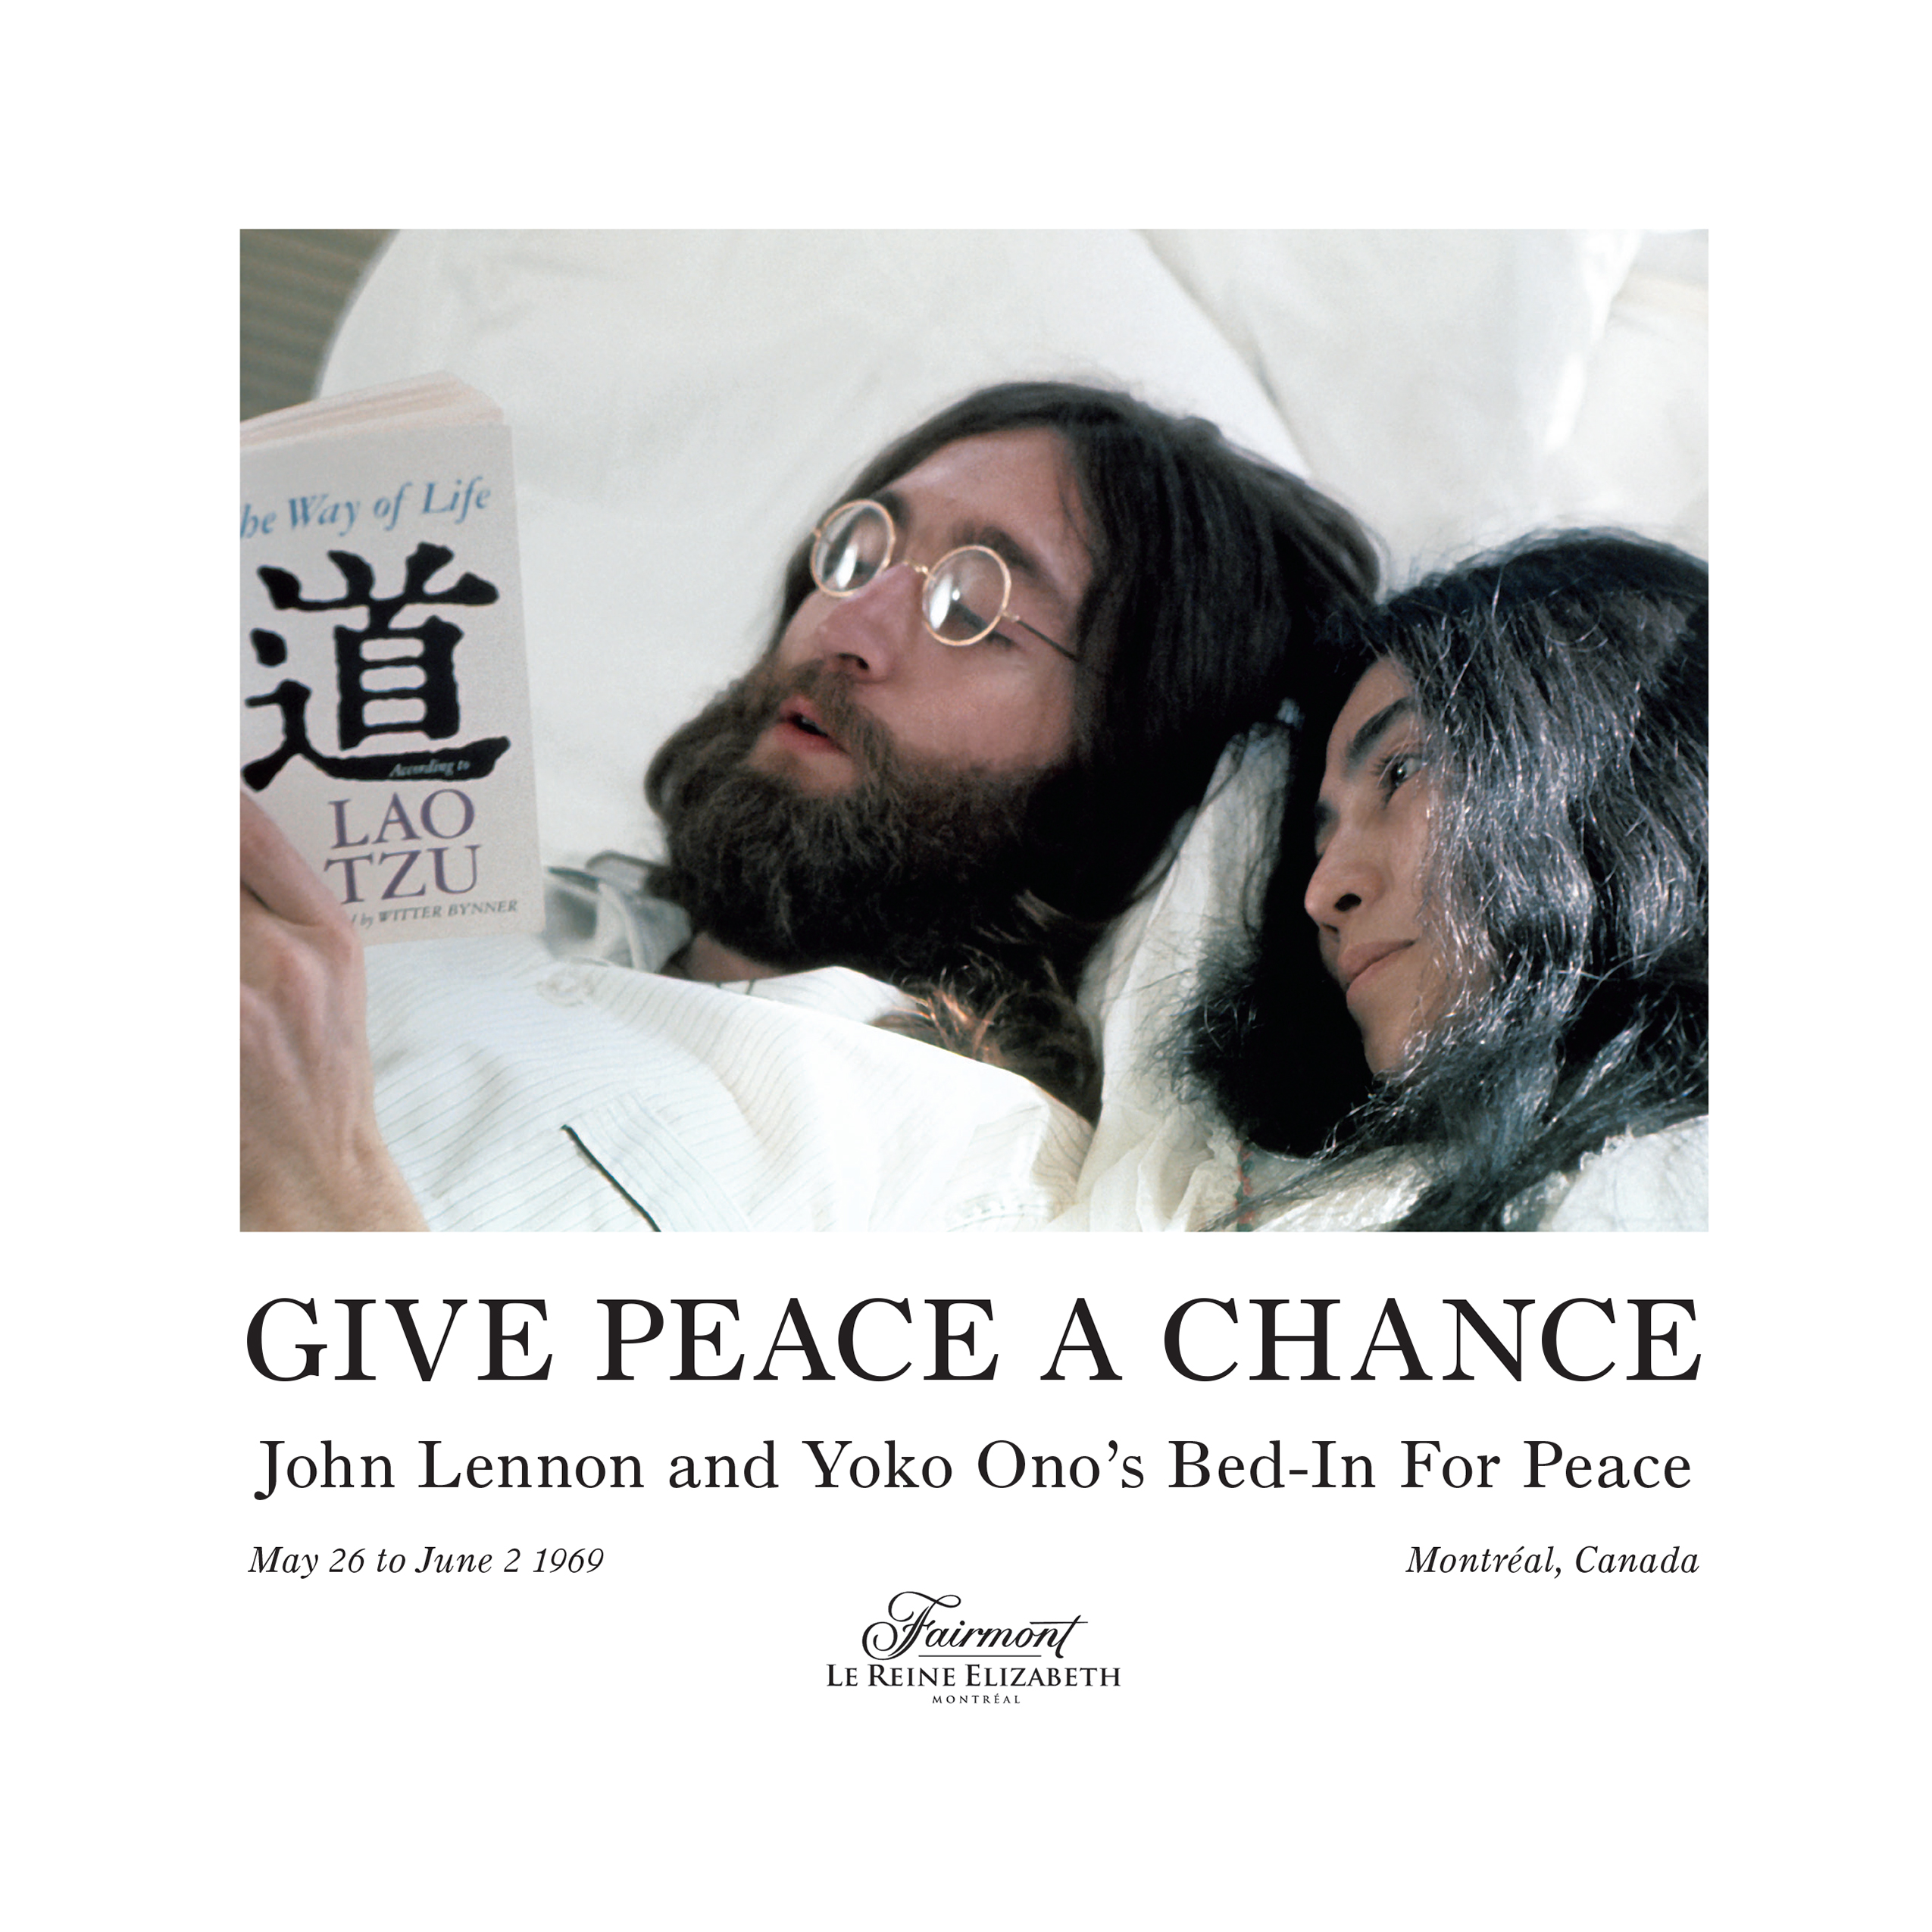 Give Peace A Chance John Lennon And Yoko Ono S Bed In For Peace Spicabookdesign